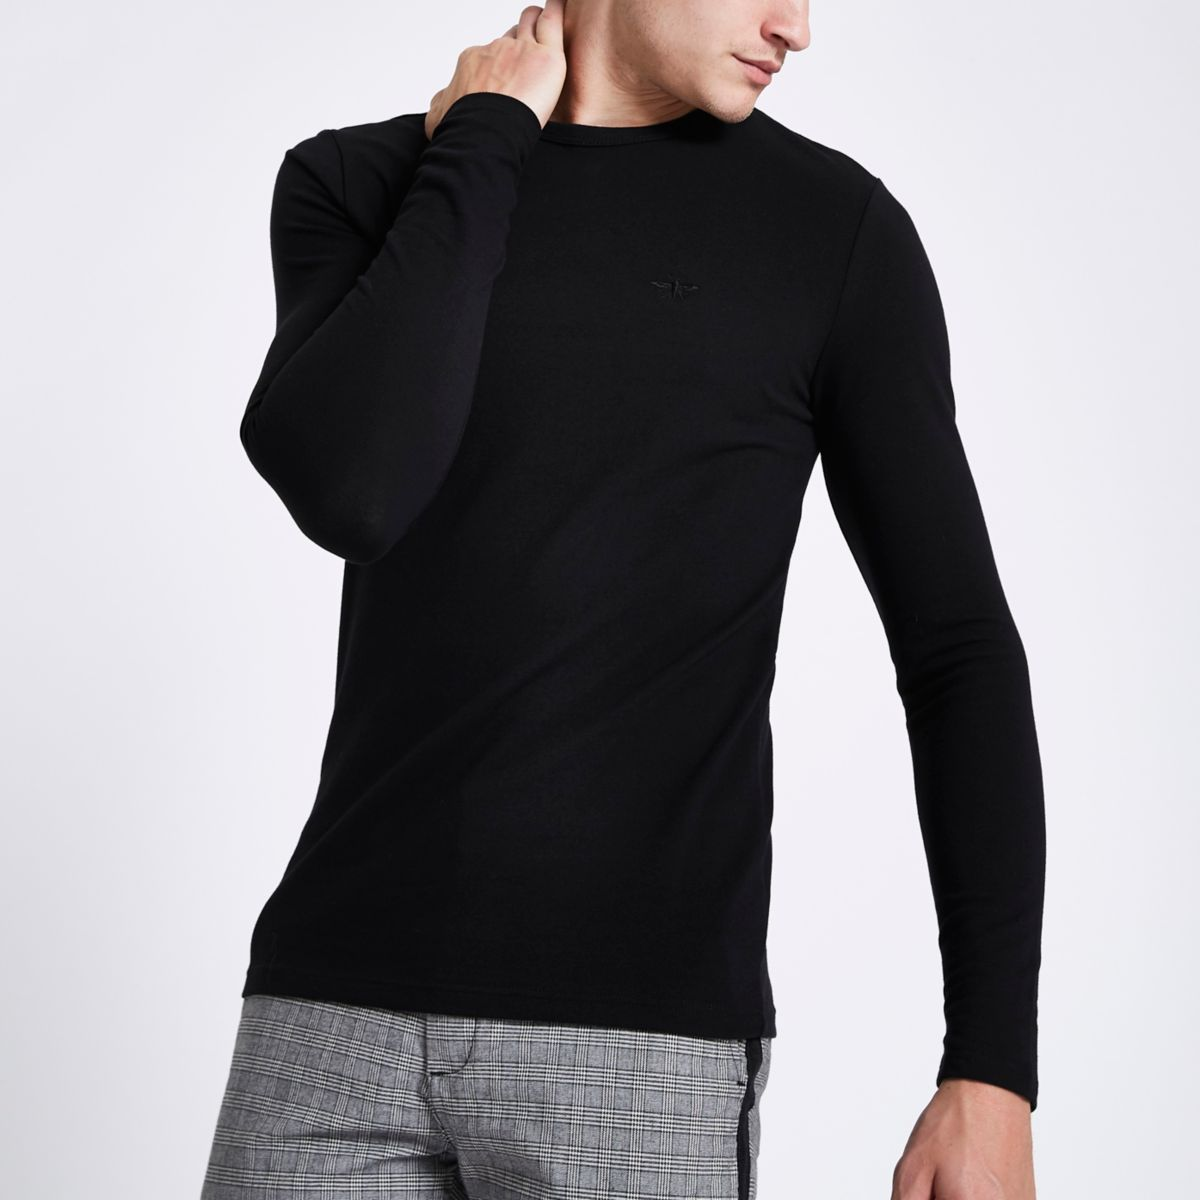 Black pique long sleeve muscle fit T-shirt